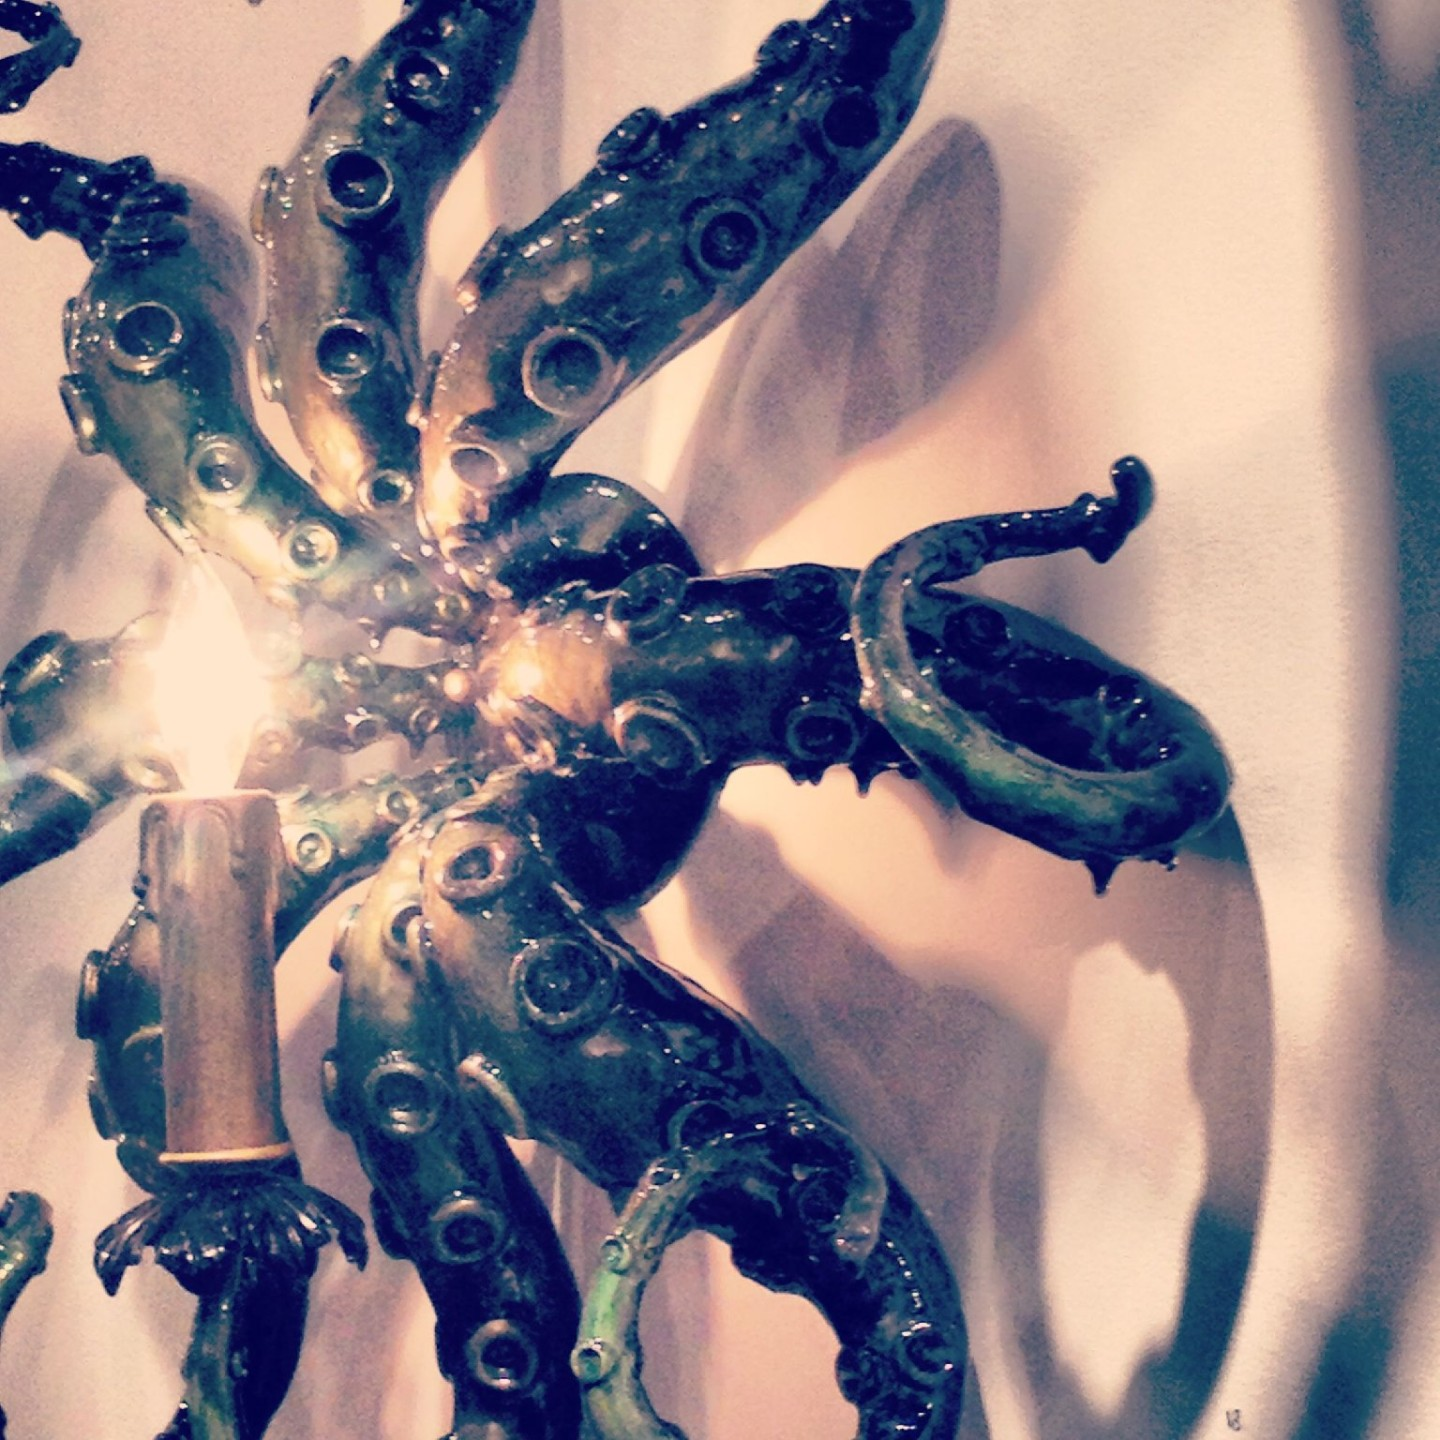 Octopus chandelier by artist Adam Wallacavage at The Shooting Gallery